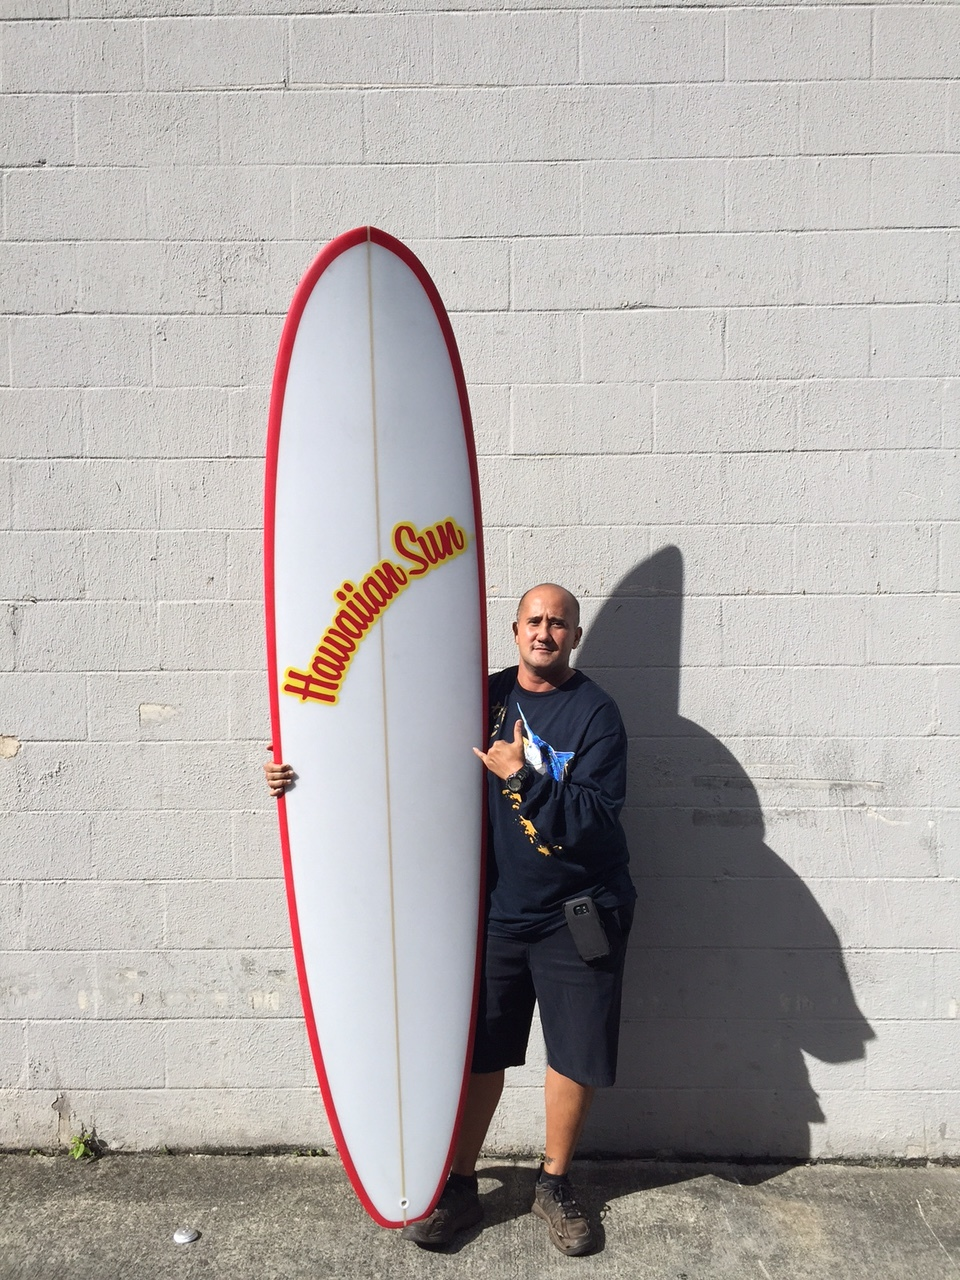 Joe Ng, winner of the Hawaiian Sun surfboard